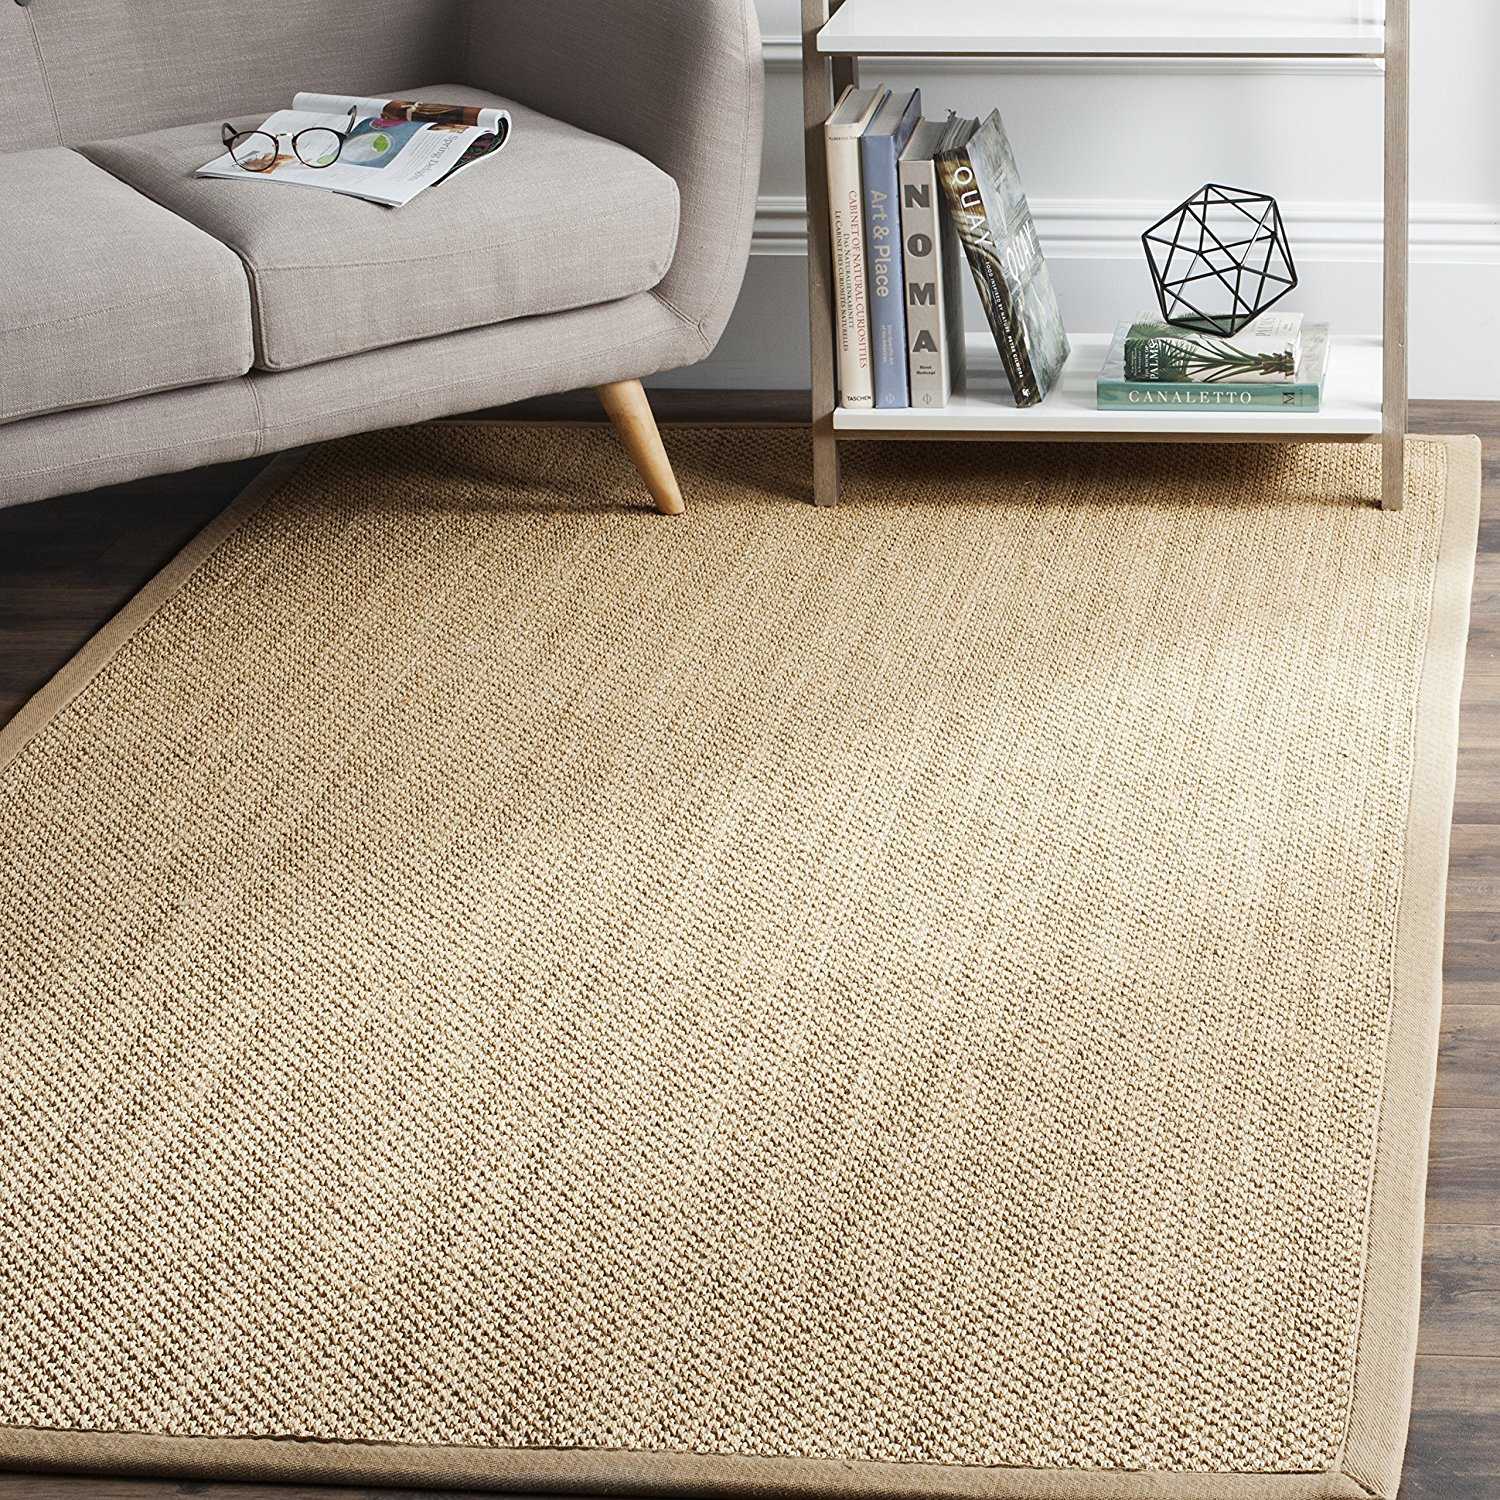 Safavieh Natural Fiber Collection NF141B Tiger Paw Weave Maize and Linen Sisal Area Rug (6' x 9')